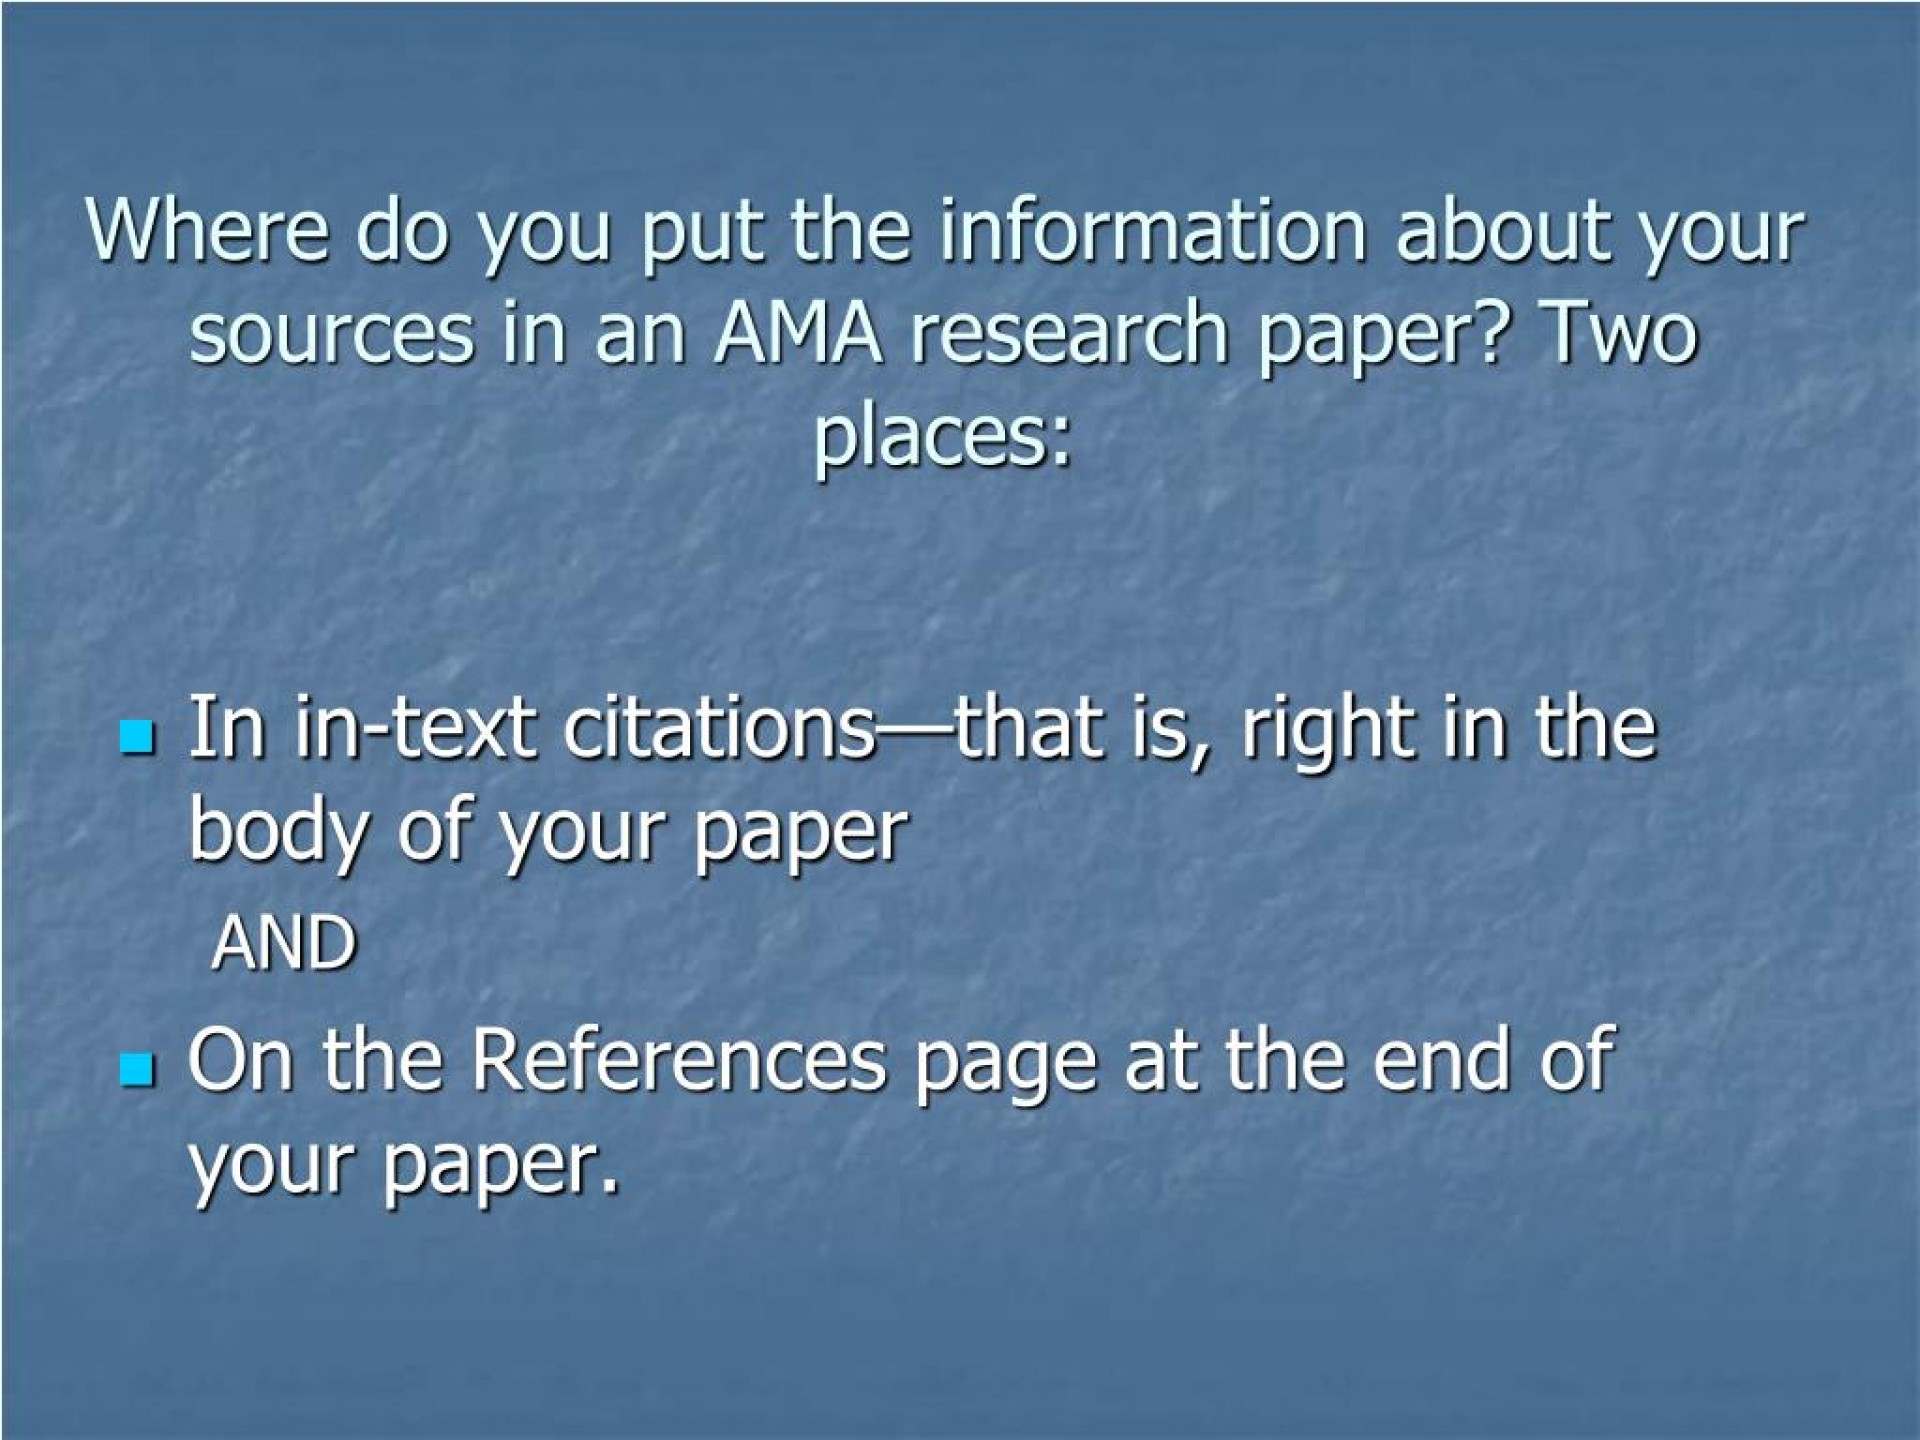 004 Where Do You Put The Information About Your Sources In An Ama Research Paper Two Places L Can I Write One Fascinating A Day 6 Page 1920